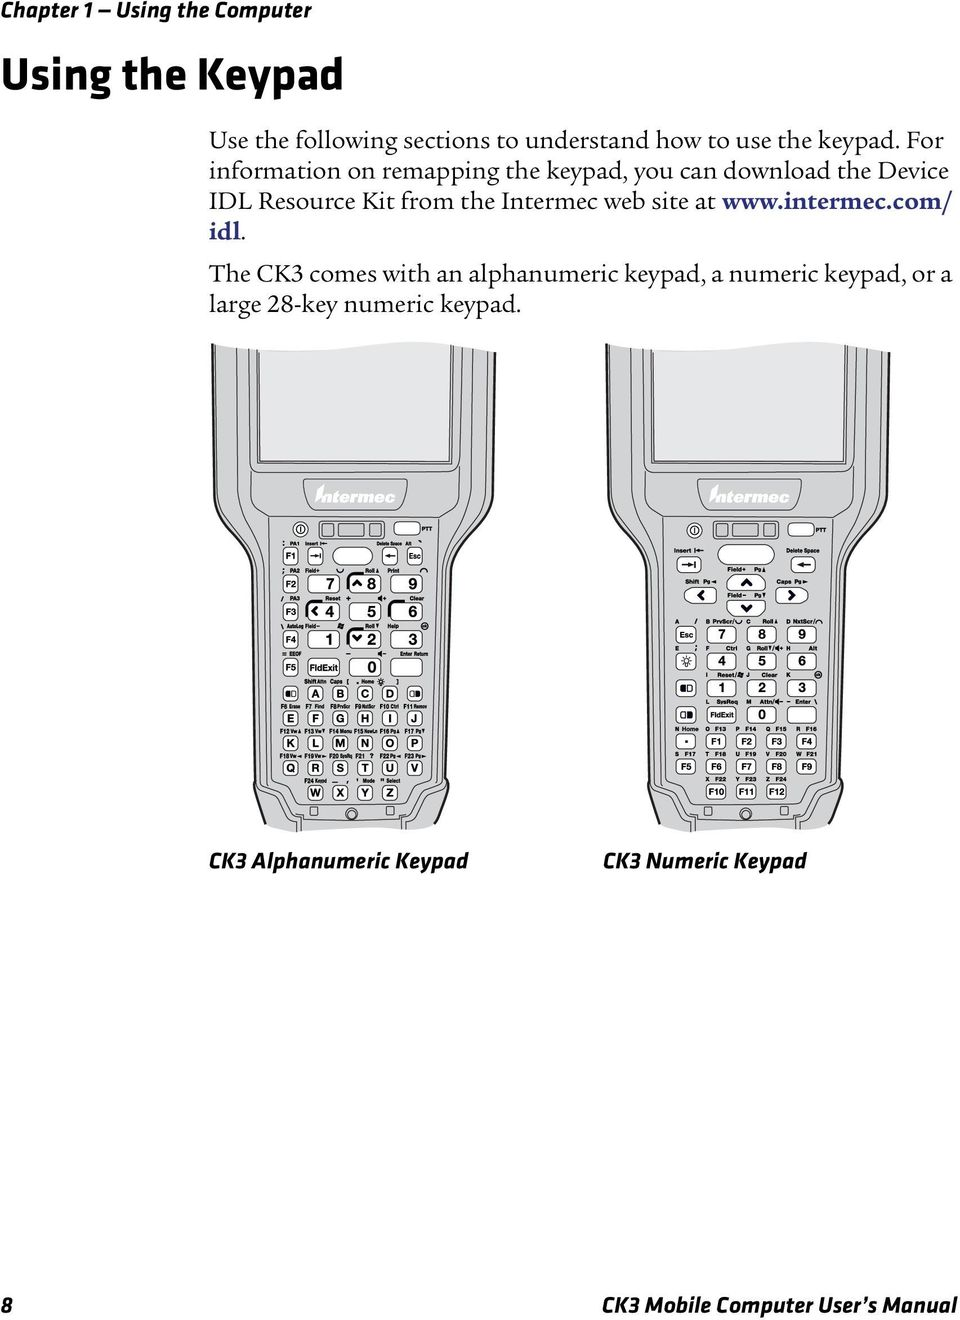 For information on remapping the keypad, you can download the Device IDL Resource Kit from the Intermec